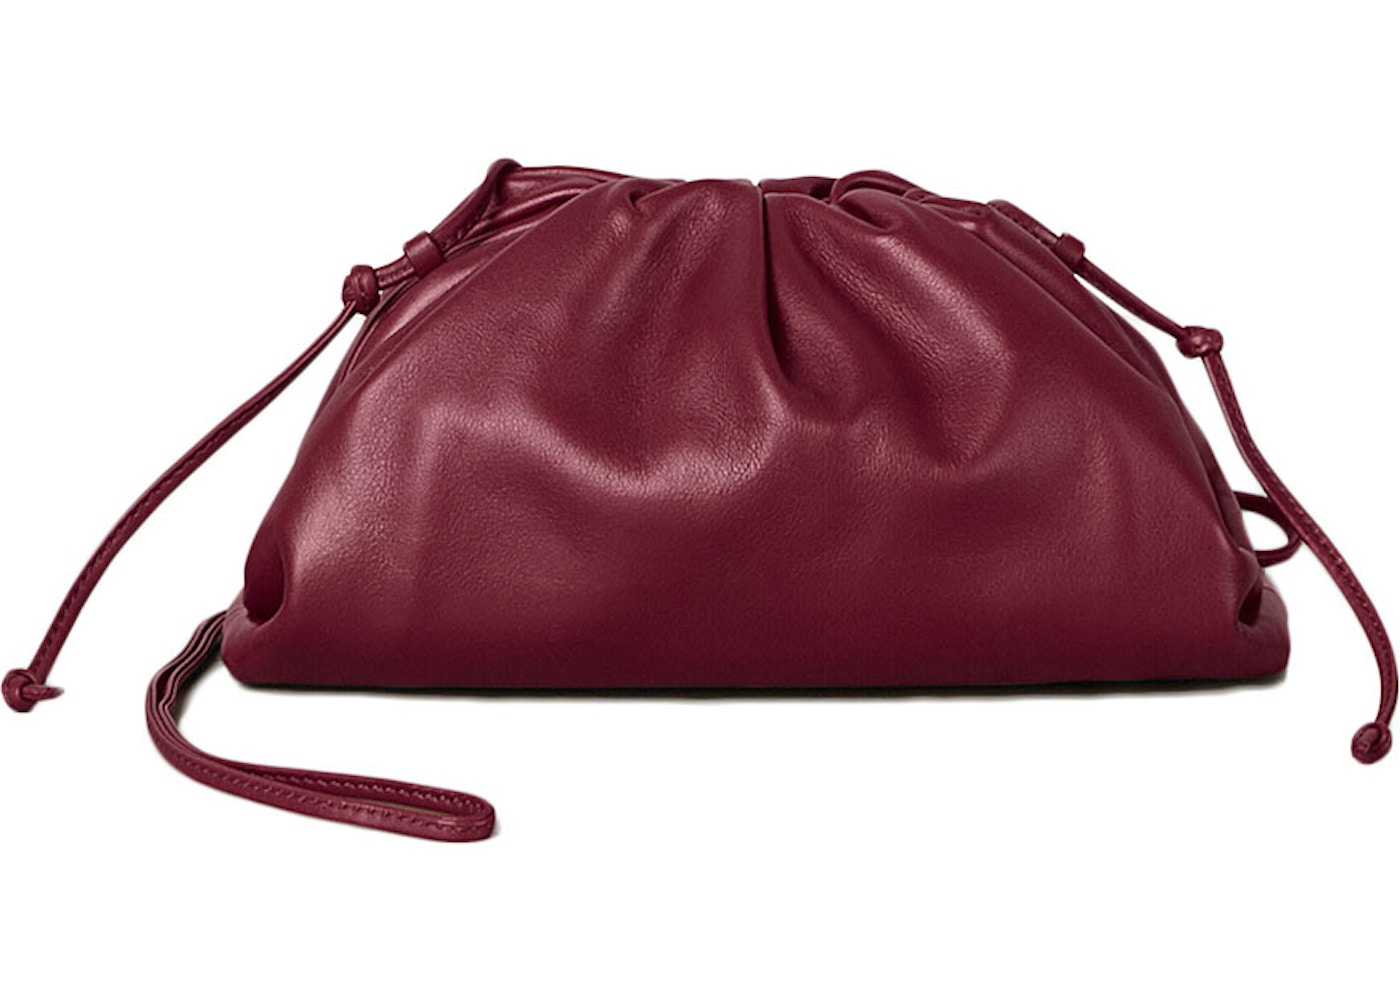 Bottega Veneta The Pouch 20 Butter Calf Bordeaux